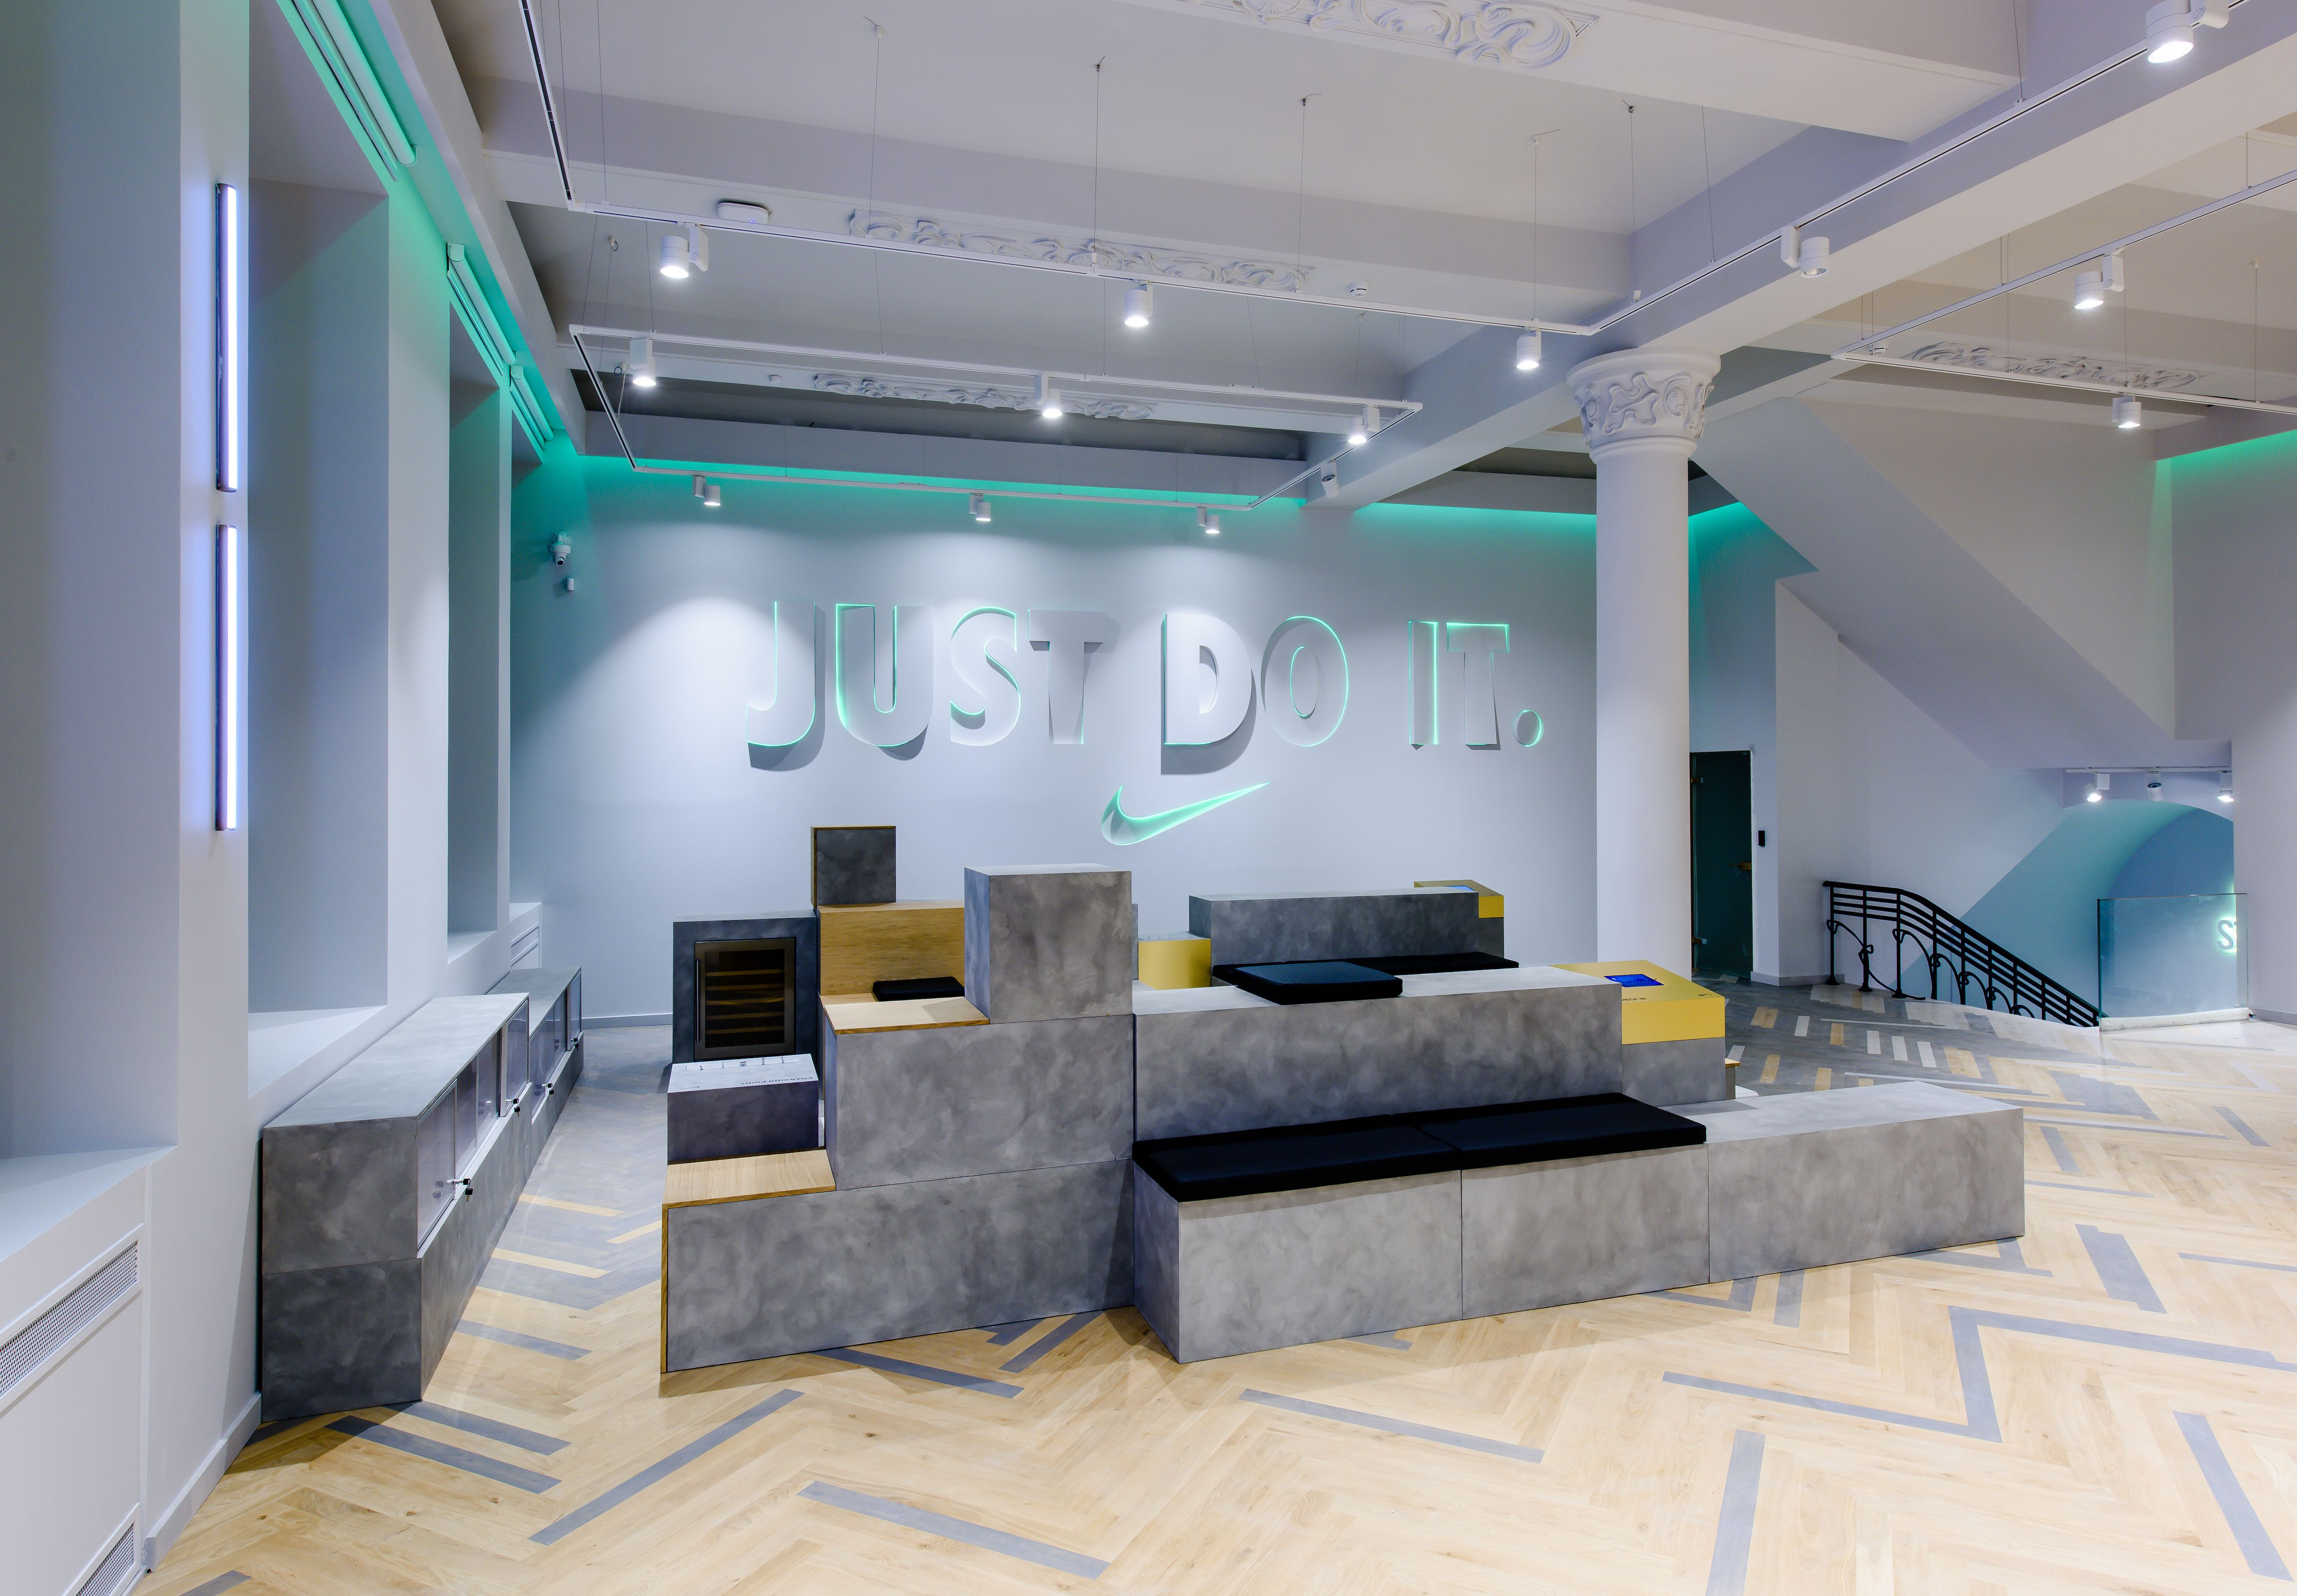 290sqm Amsterdam Just Do It New Nike Moscow Store Ntc Training Space Design By